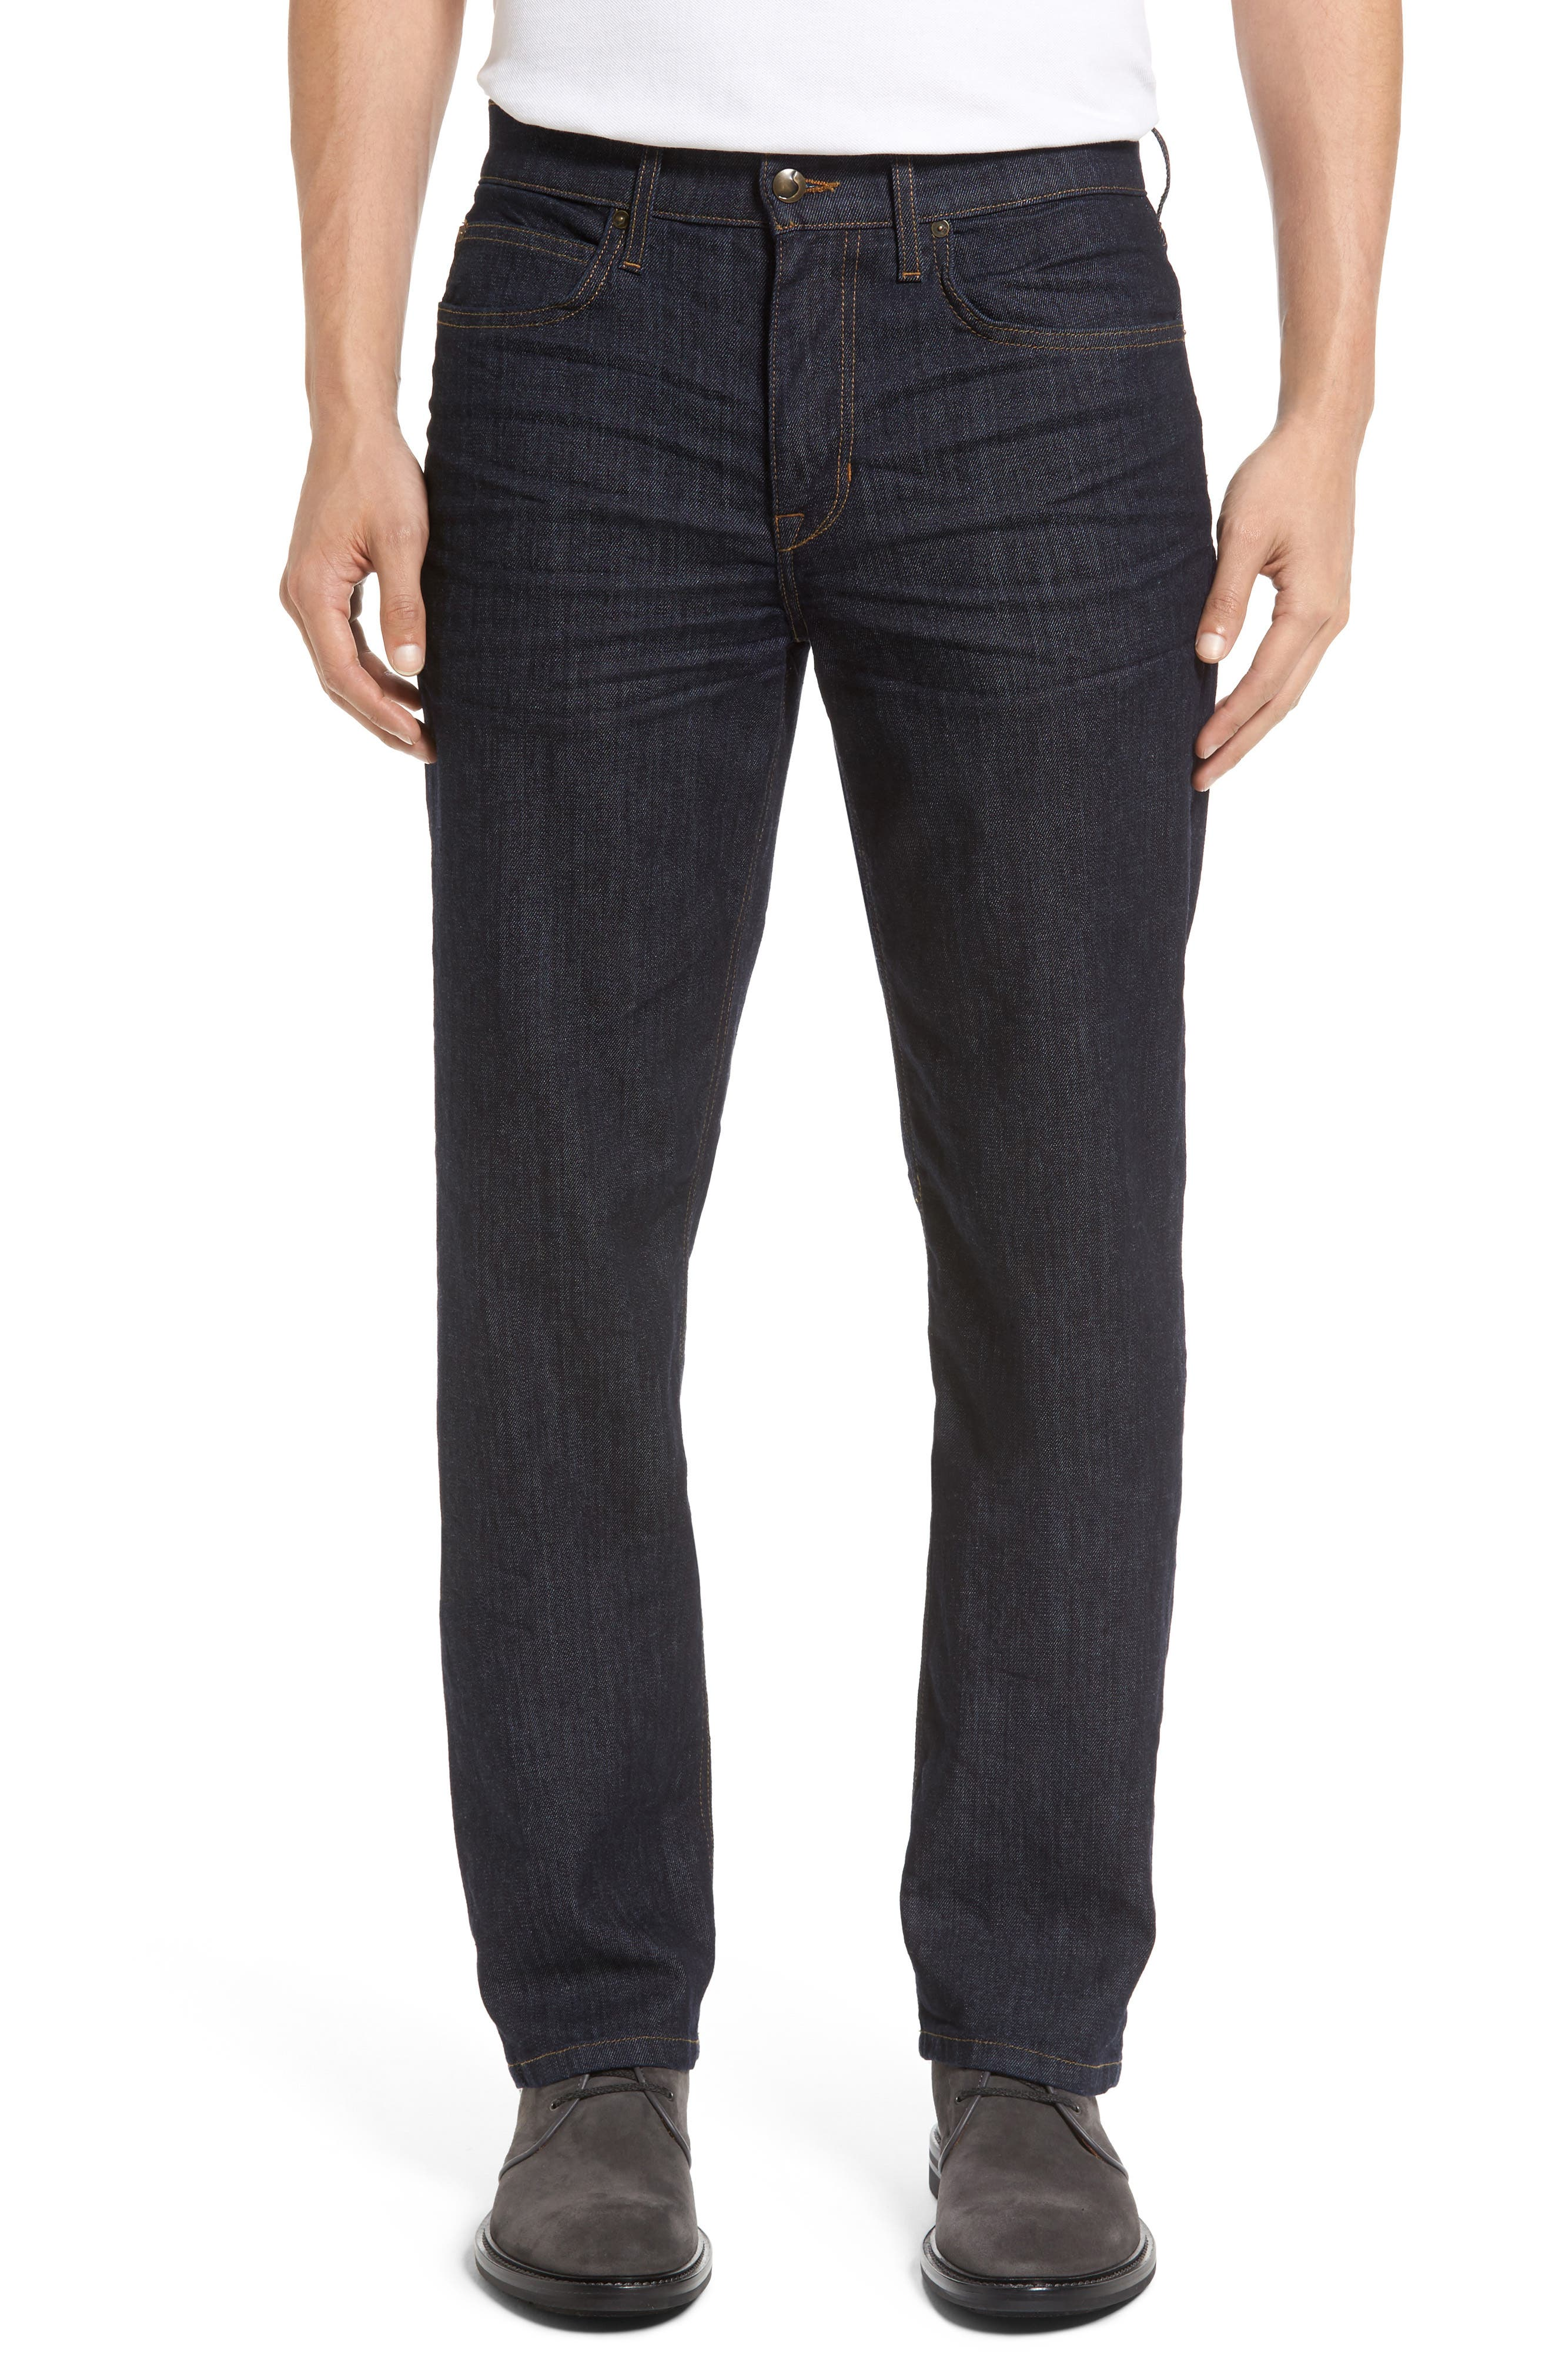 Rebel Relaxed Fit Jeans,                         Main,                         color, Roberts